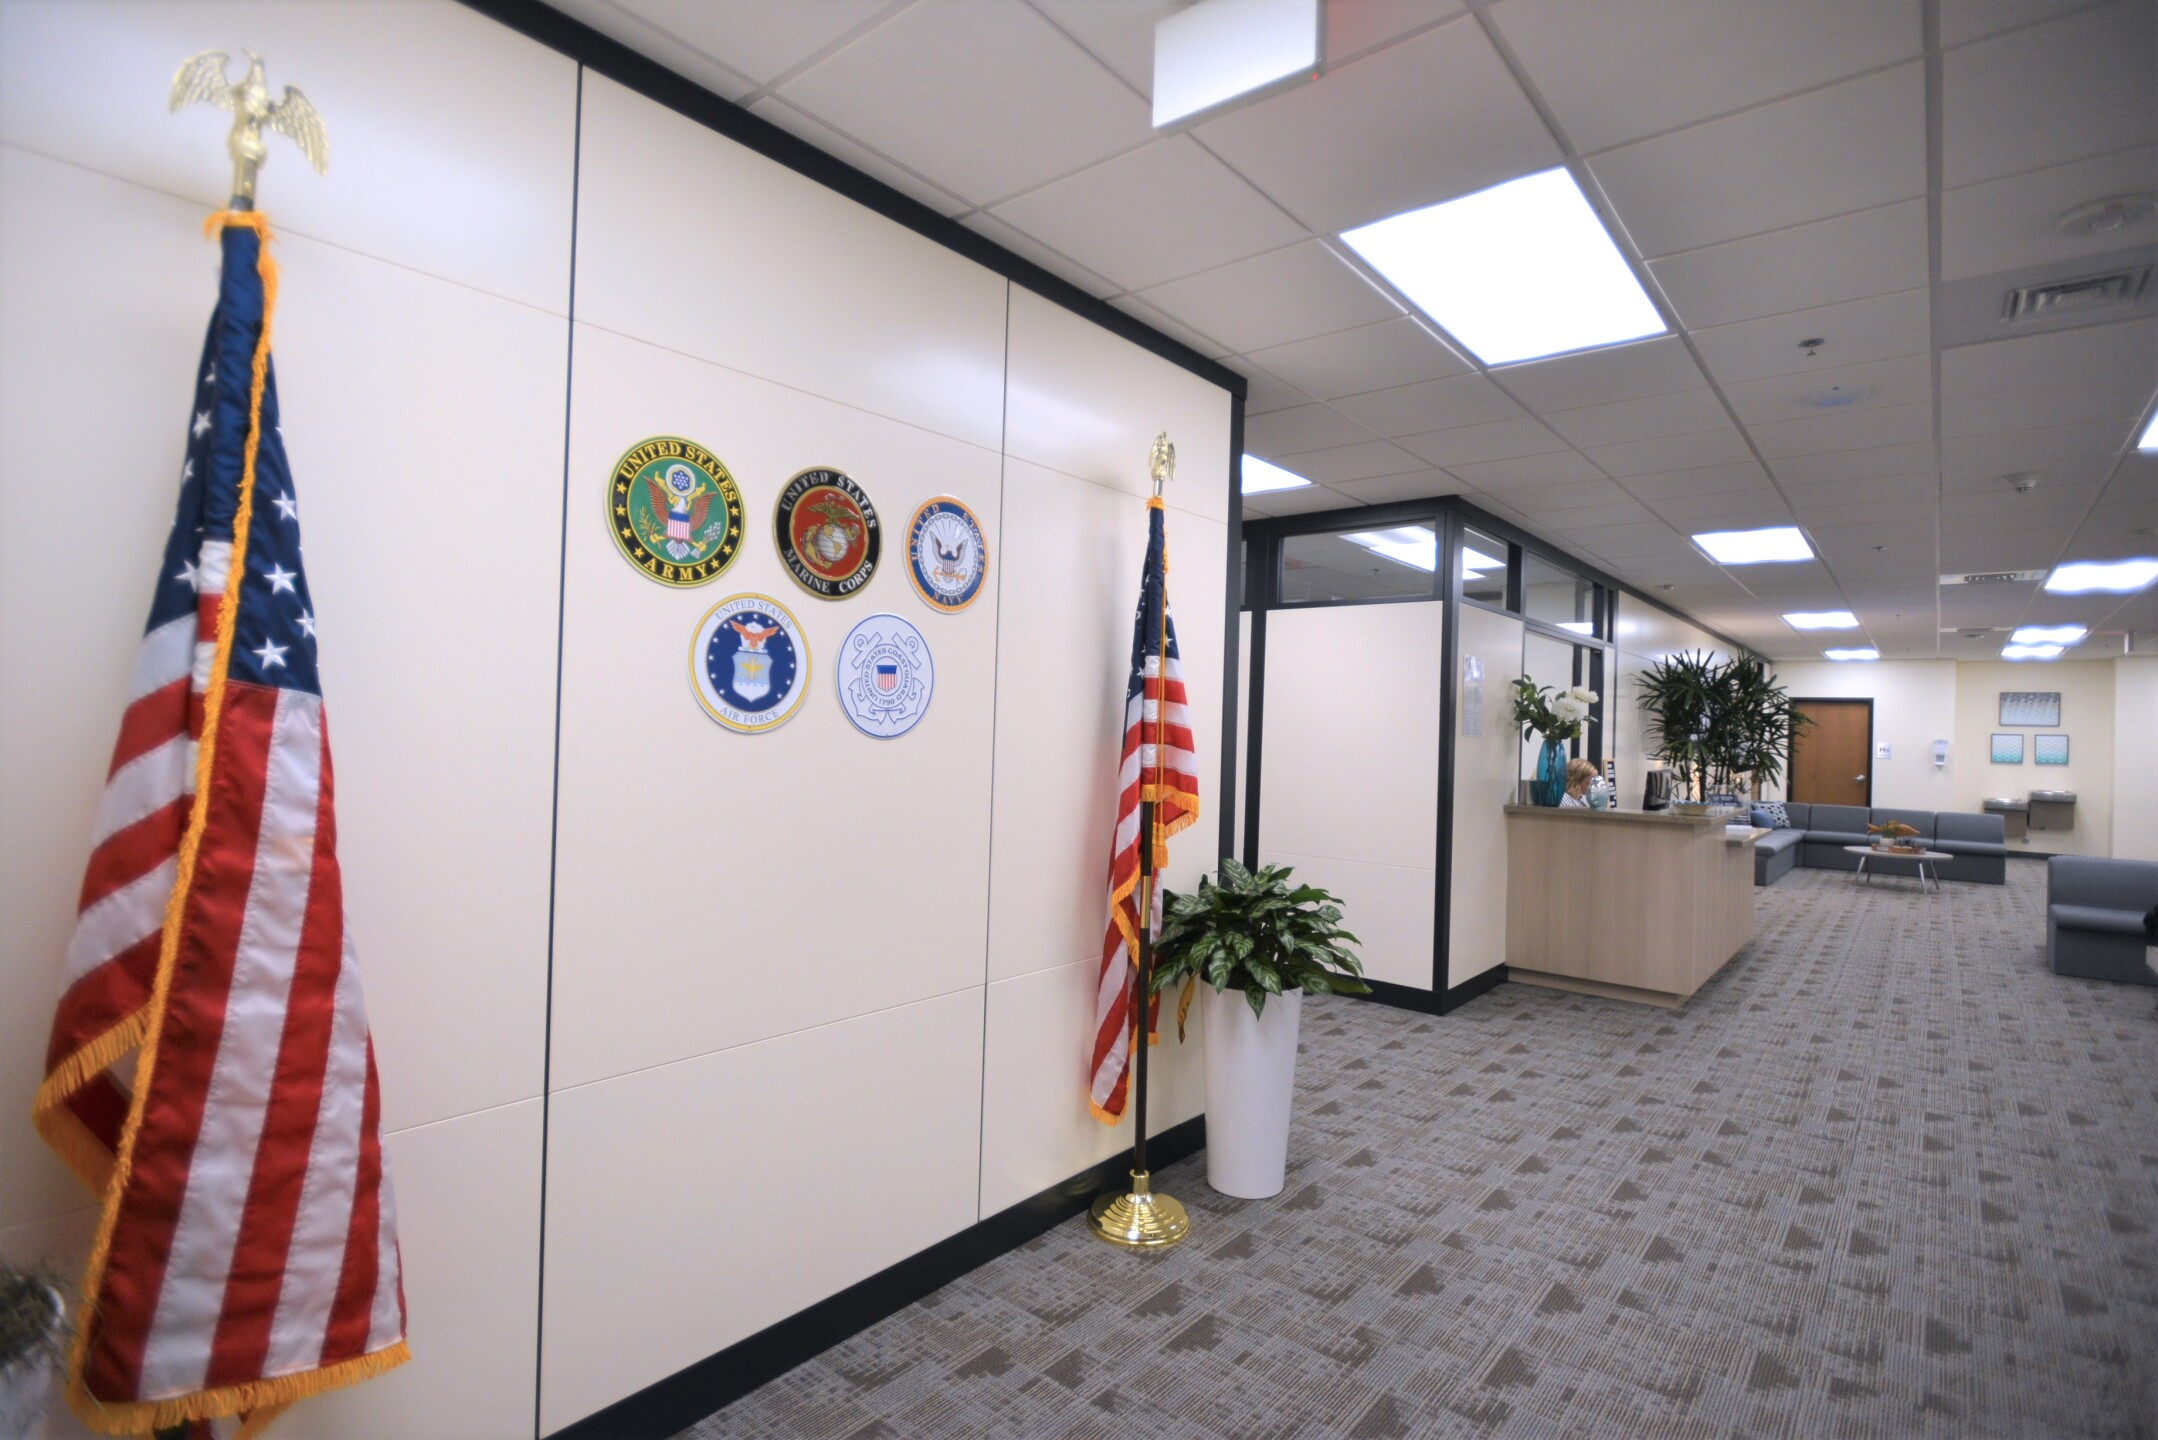 Photos: New clinic to help post-9/11 veterans and their families opens in VirginiaBeach